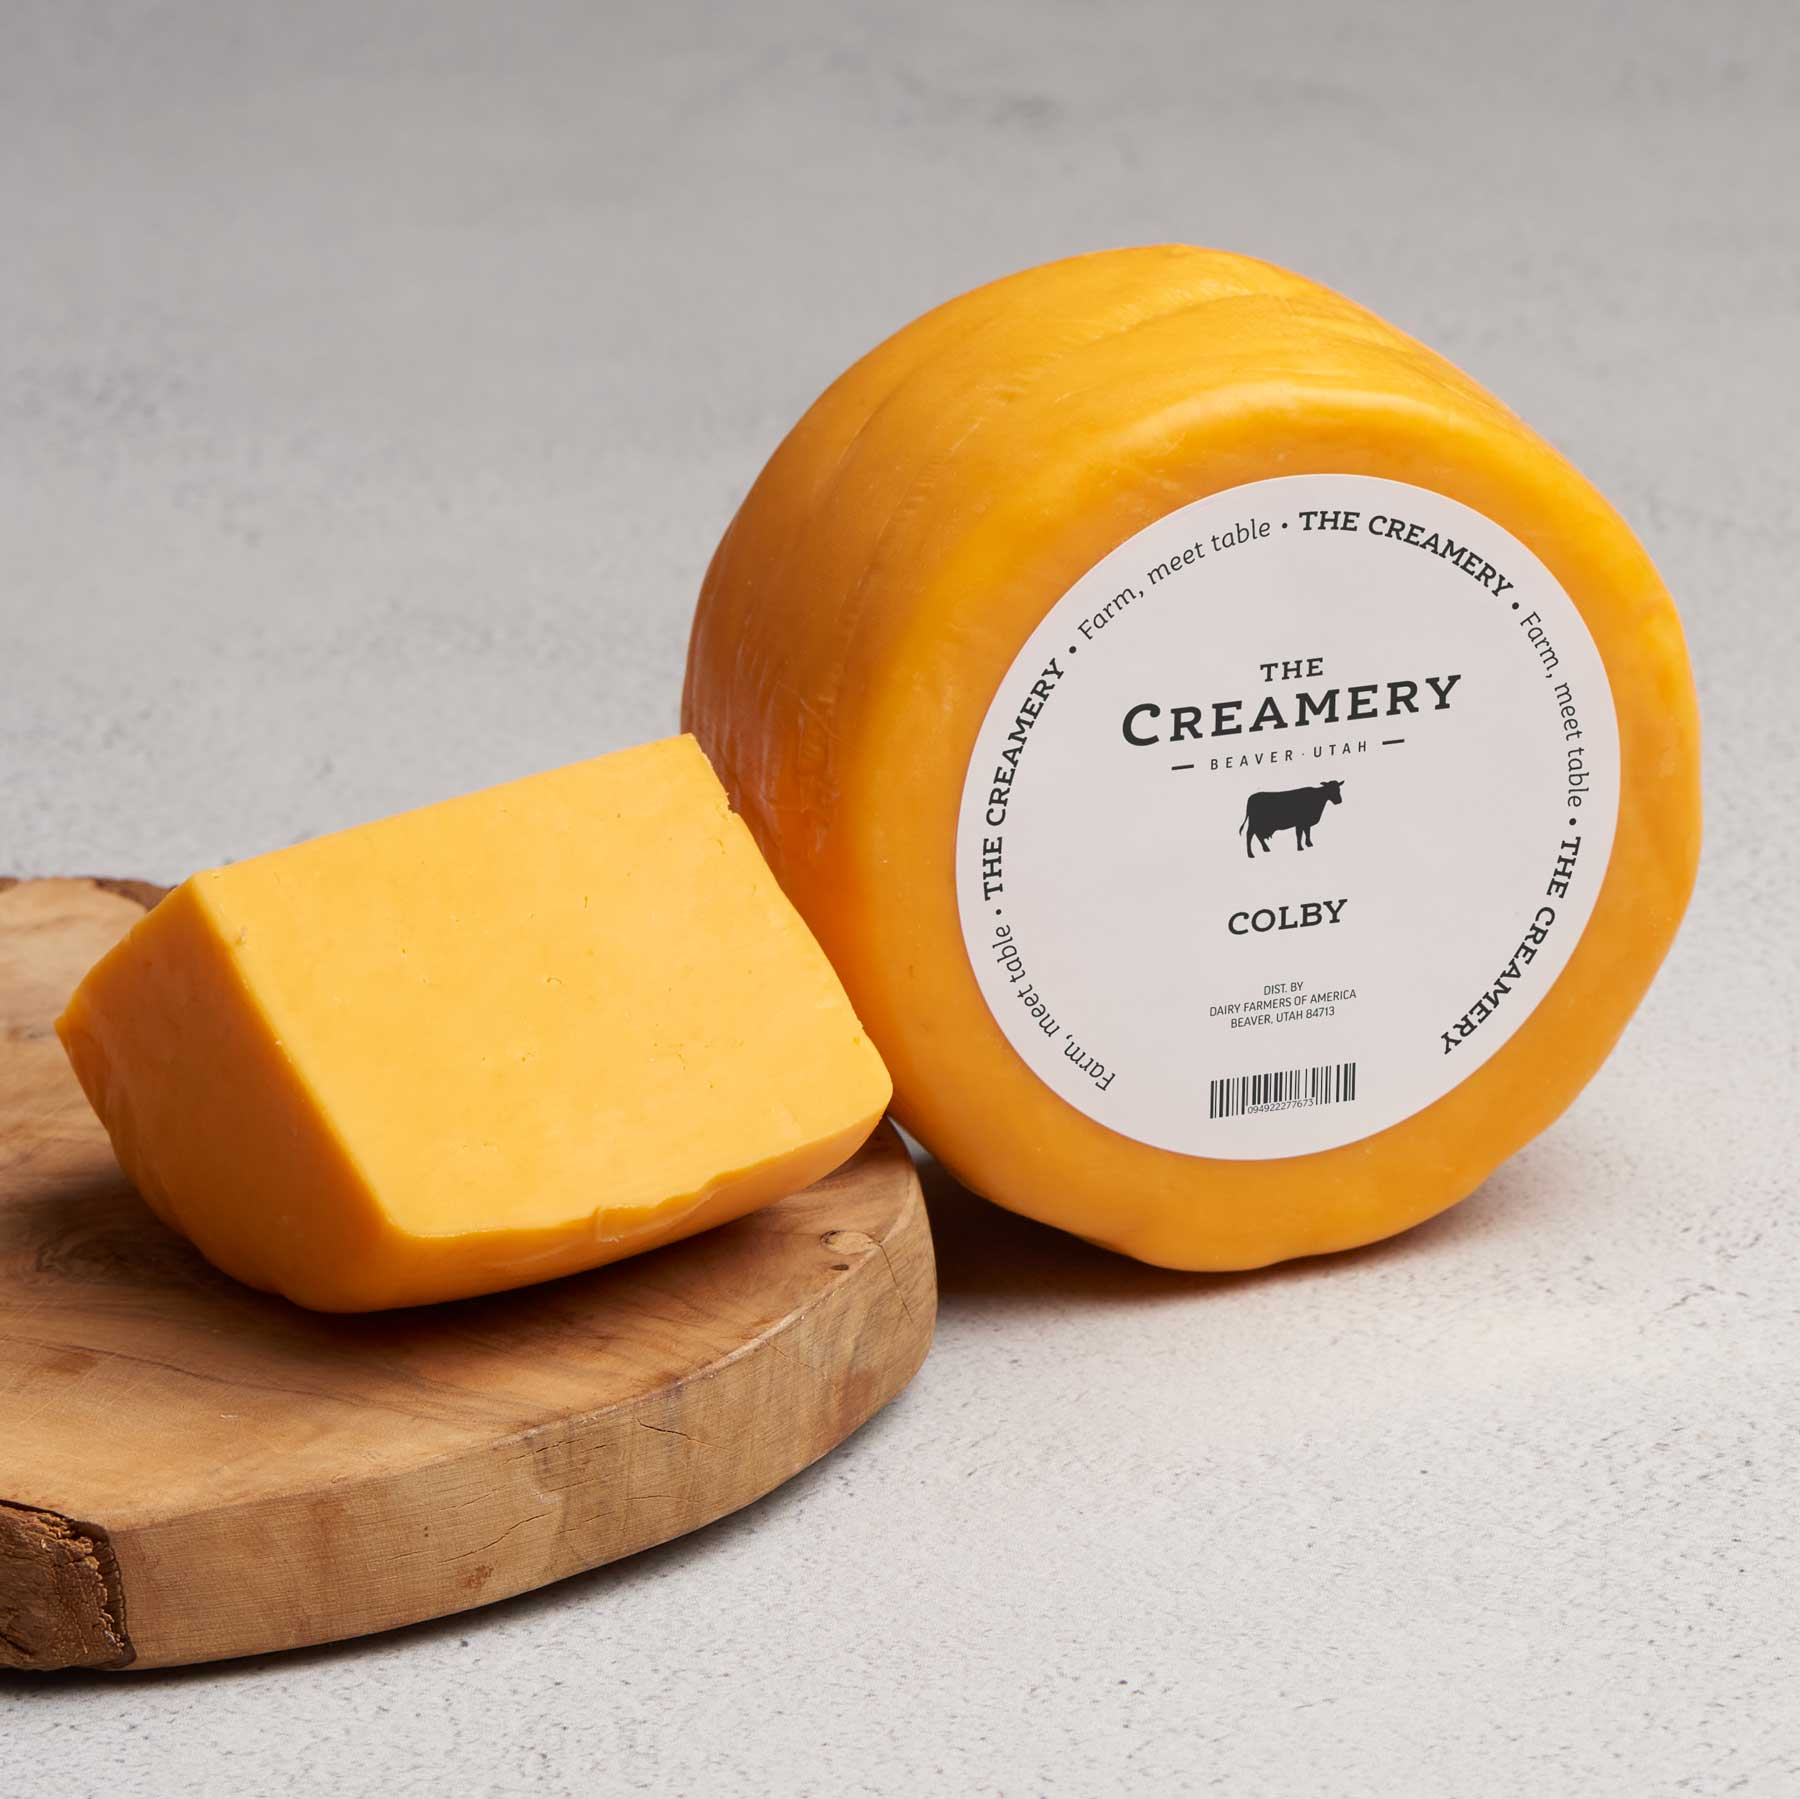 Image of Colby Cheese, 1 pound round